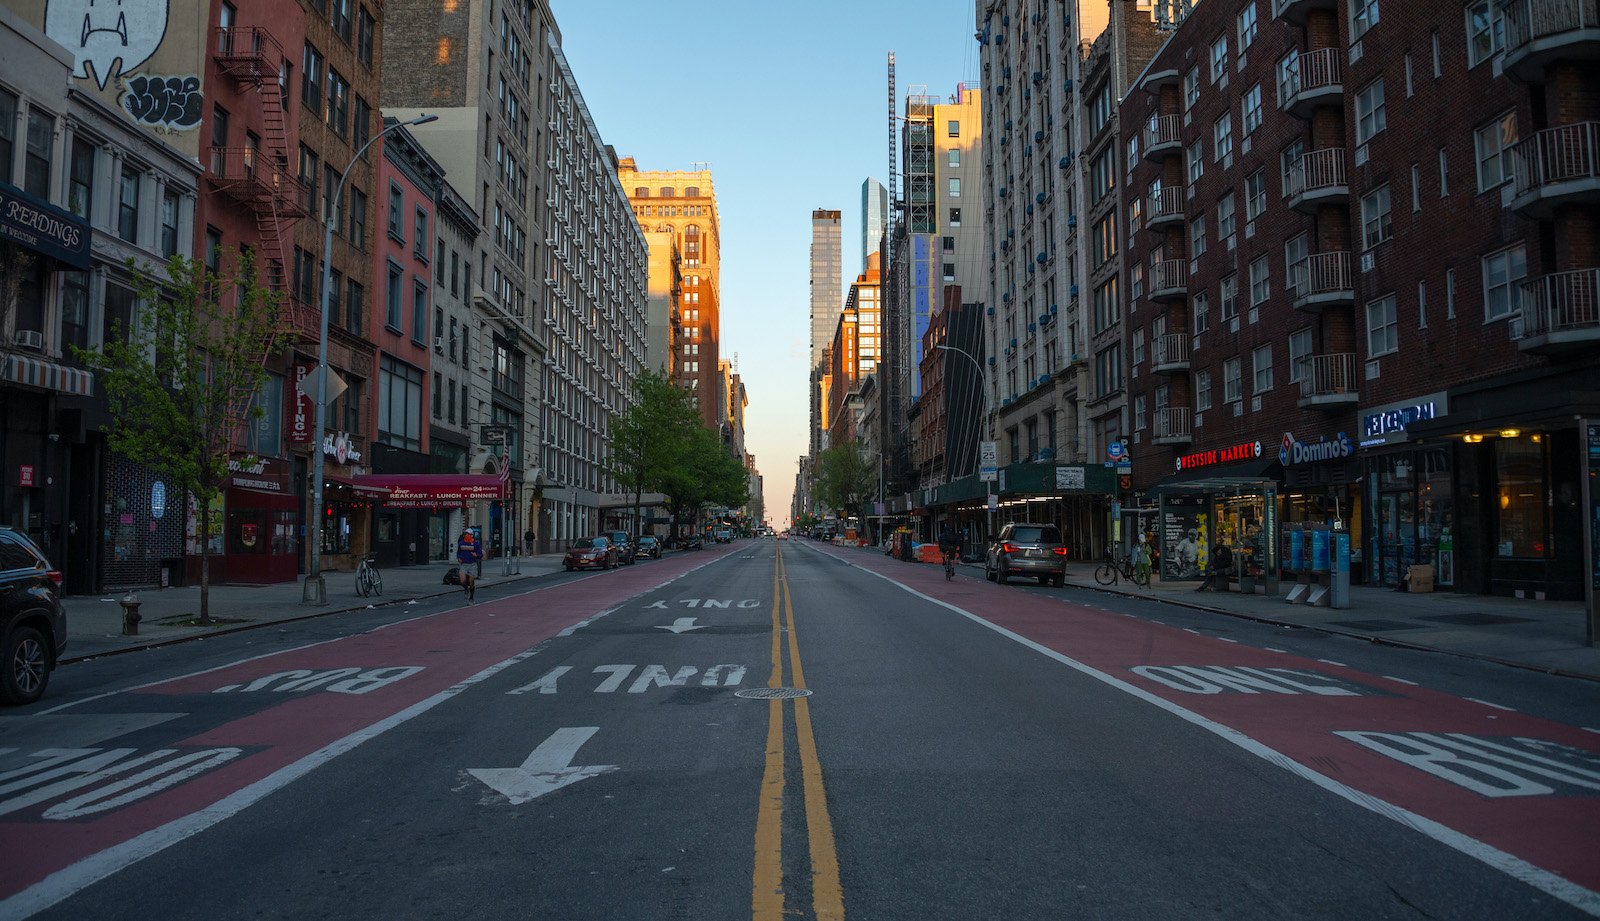 An empty street in NYC during the height of the coronavirus lockdowns.